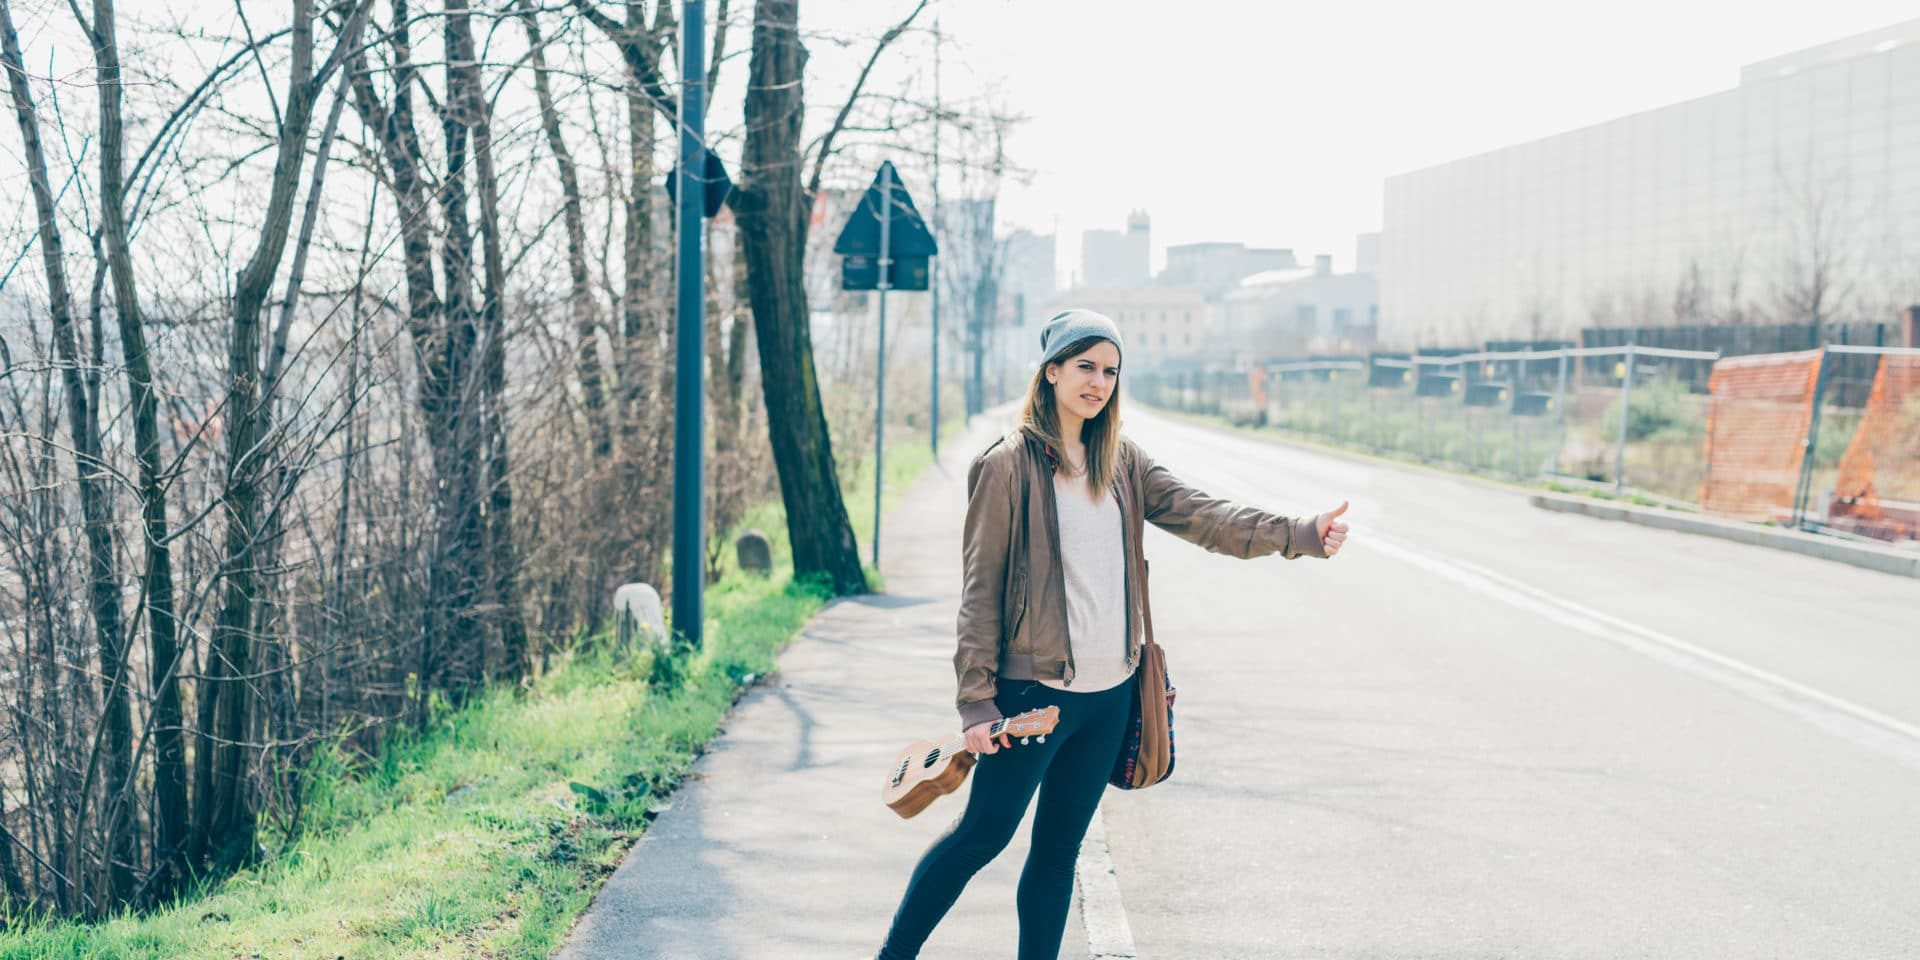 graphicstock-full-length-of-young-beautiful-caucasian-musician-woman-hitch-hiking-outdoor-in-the-city-holding-ukulele-traveler-music-transport-concept_rpgspoAtkb-1920×960